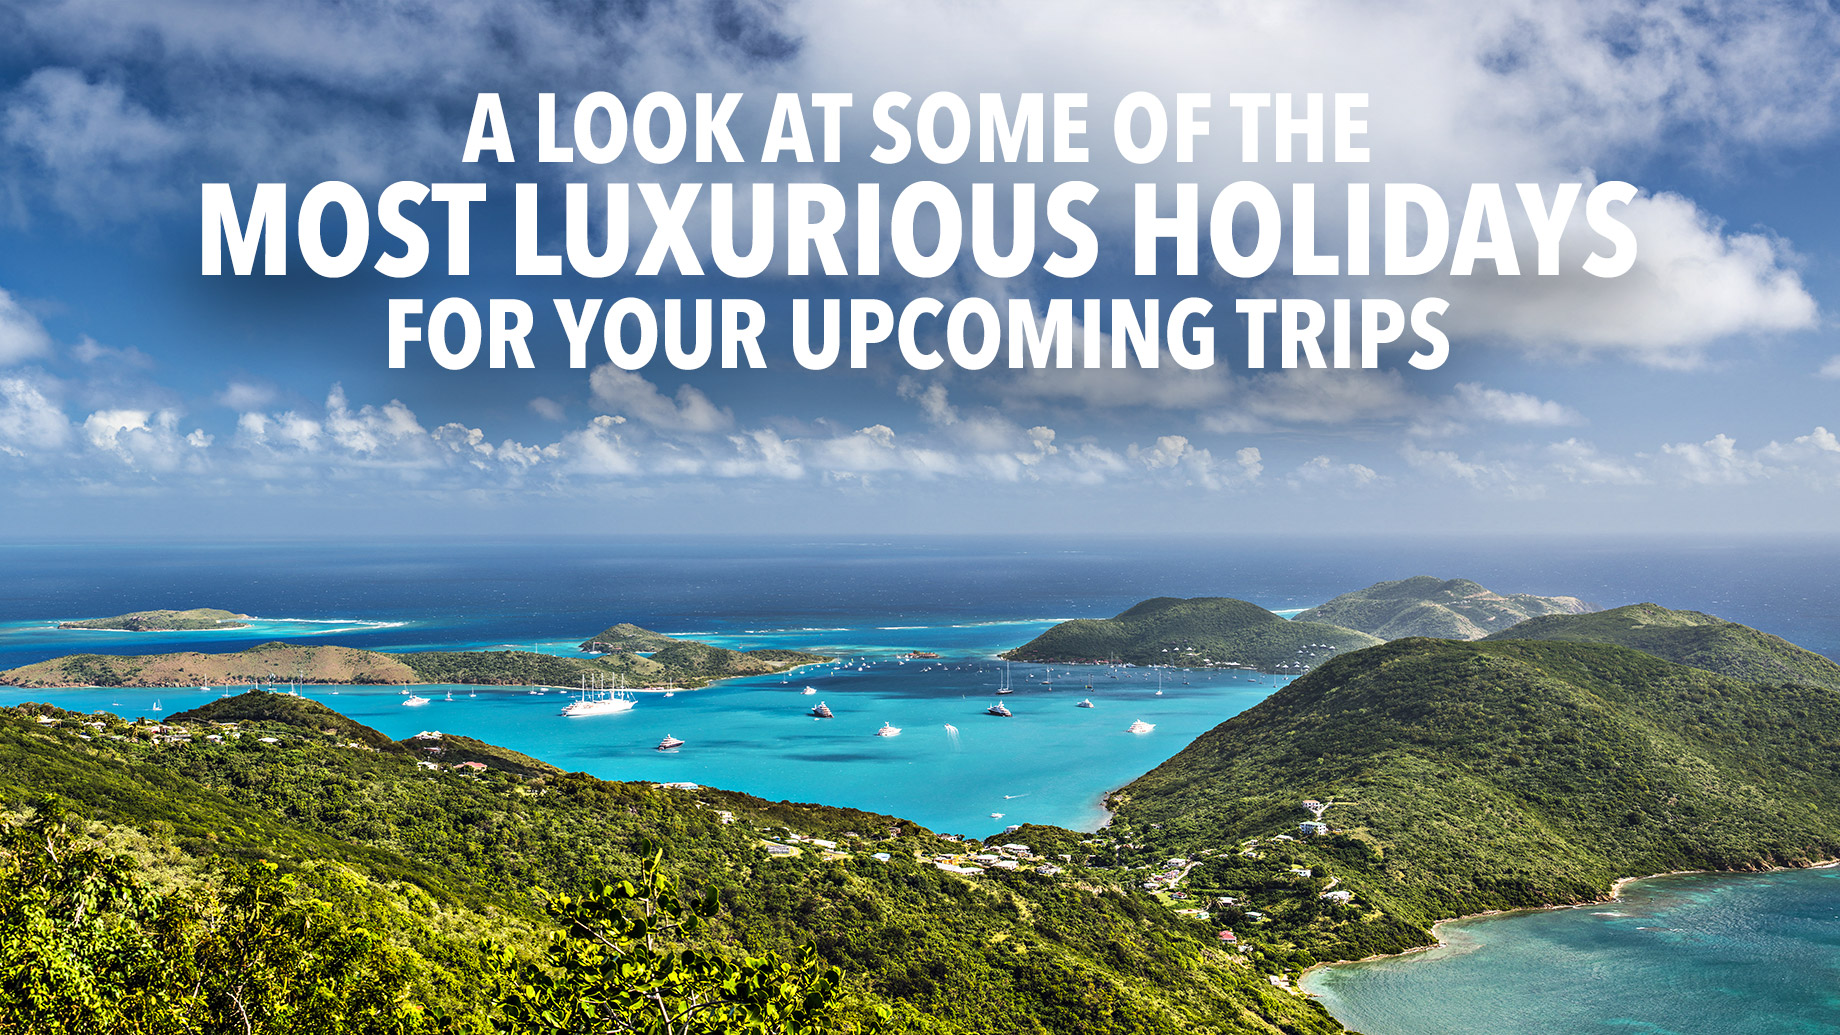 A Look At Some Of The Most Luxurious Holidays For Your Upcoming Trips